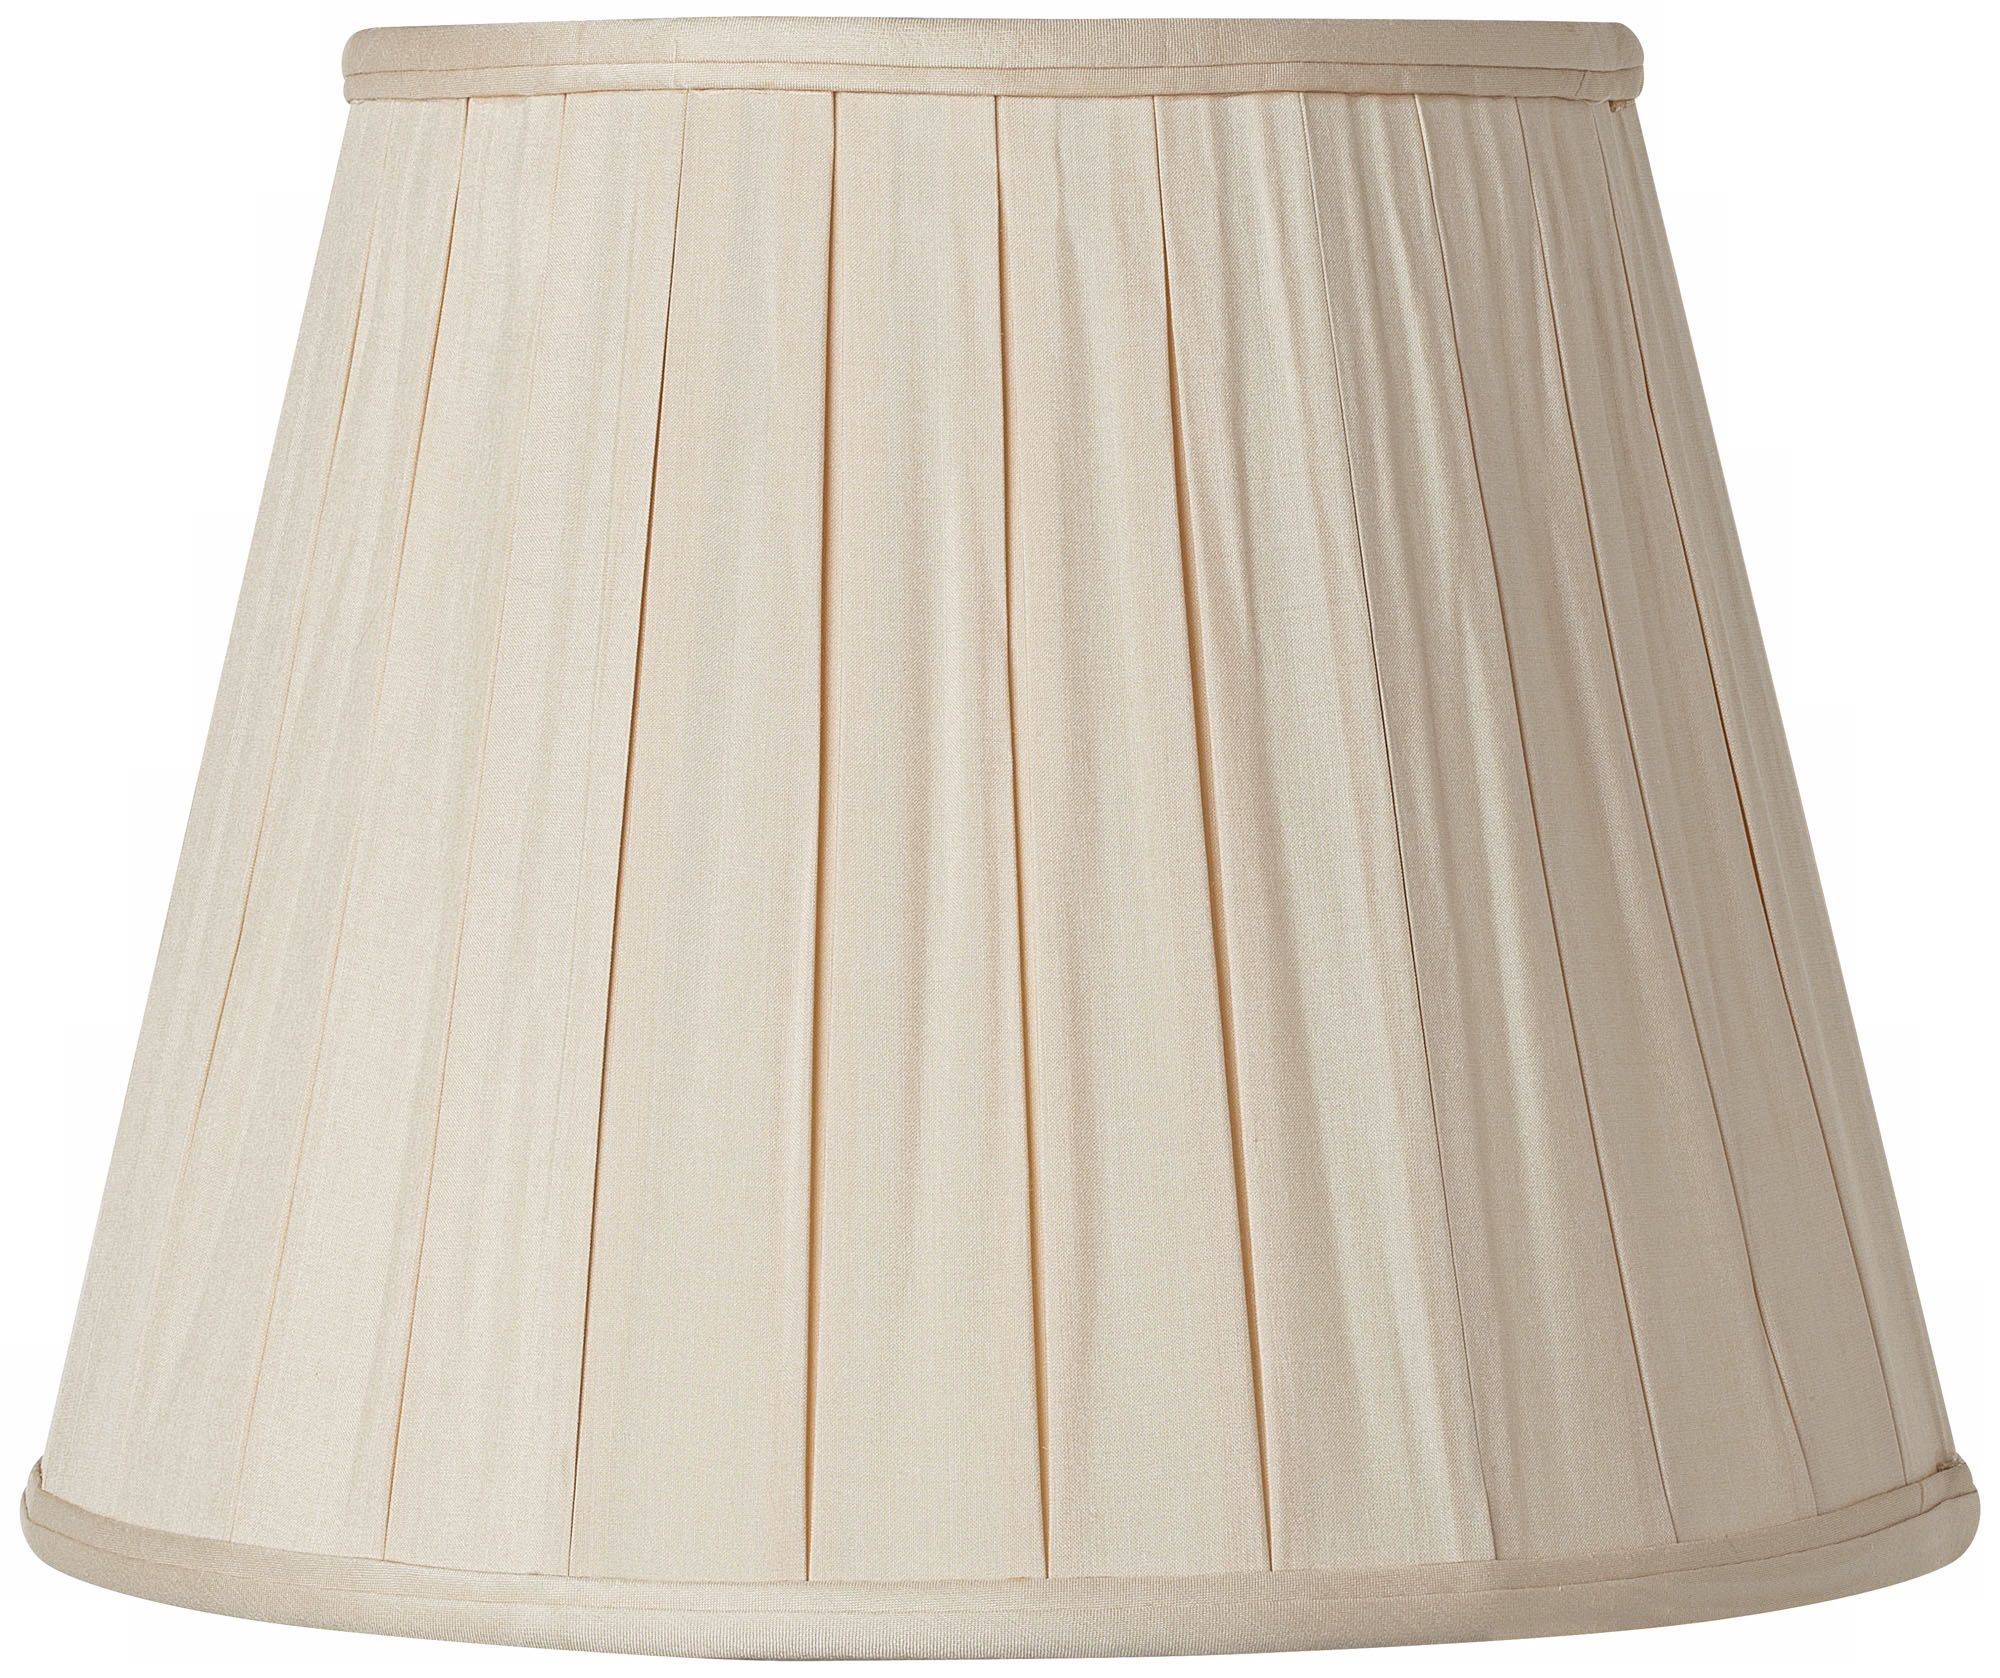 Pleated Sand Silk Empire Lamp Shade 10.5x16x12 (Spider)